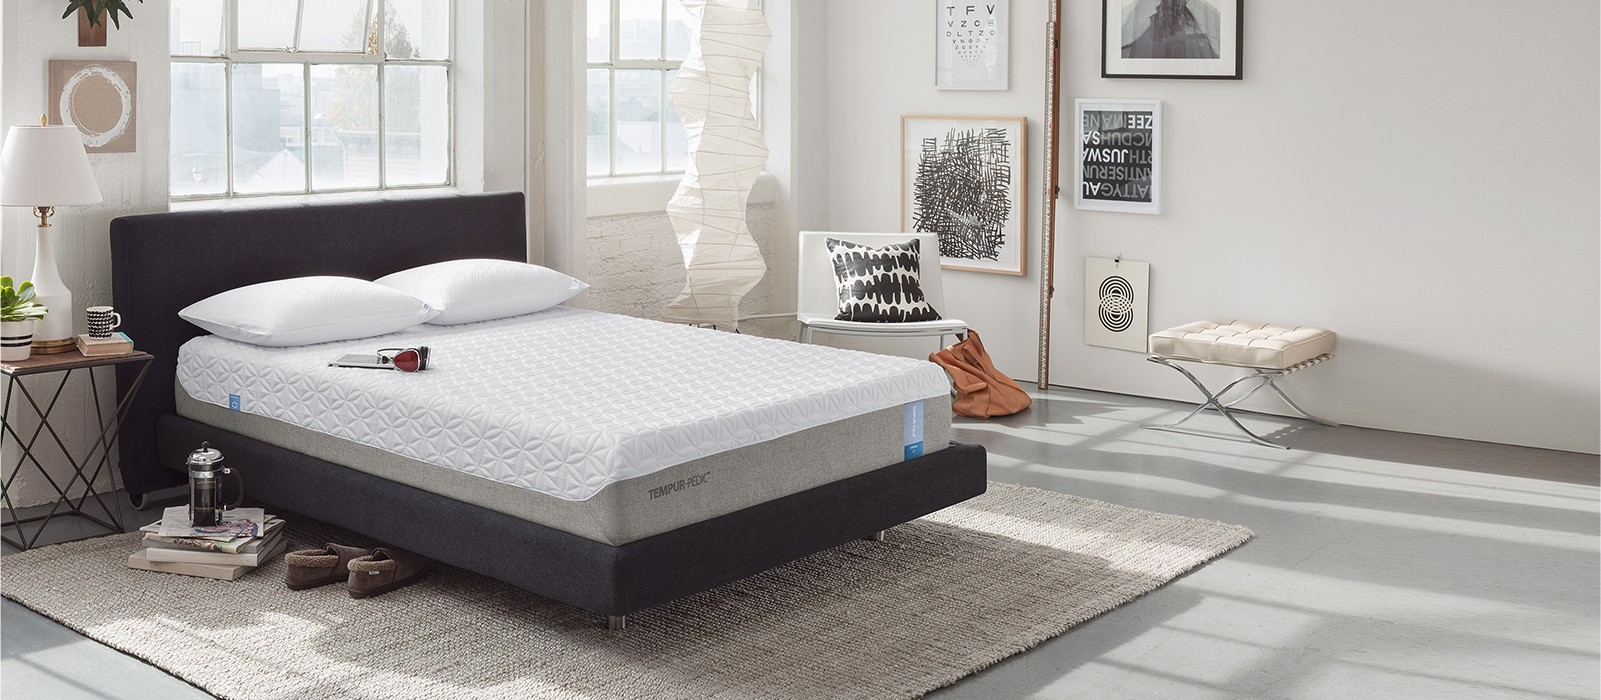 Superbe TEMPUR Cloud Prima Mattress | Tempur Pedic ?